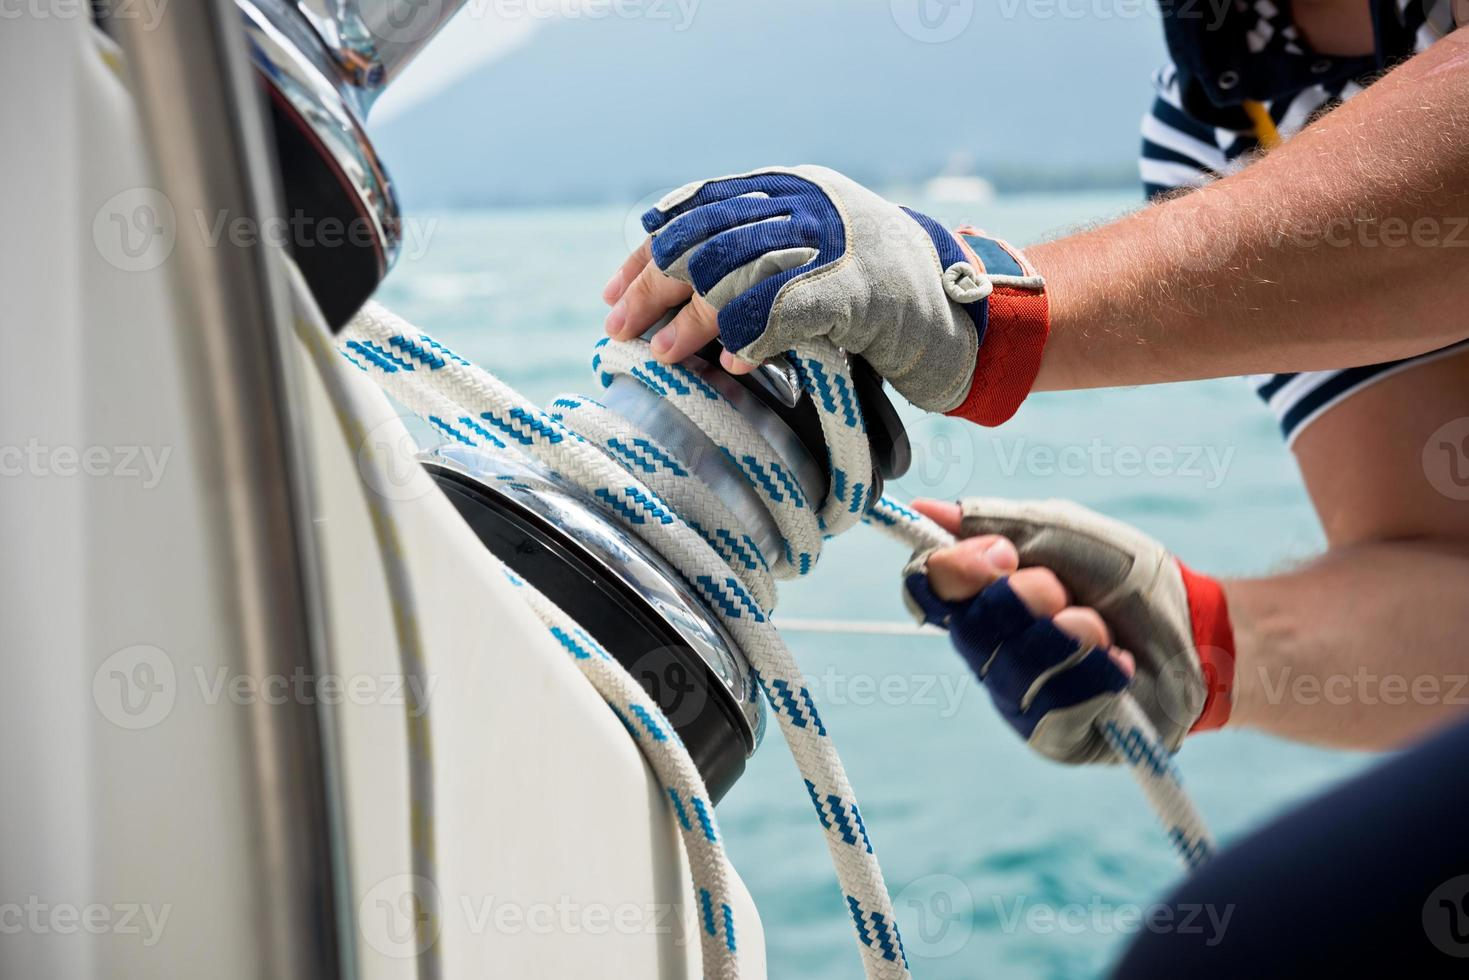 Winch and sailors hands on a sailboat photo